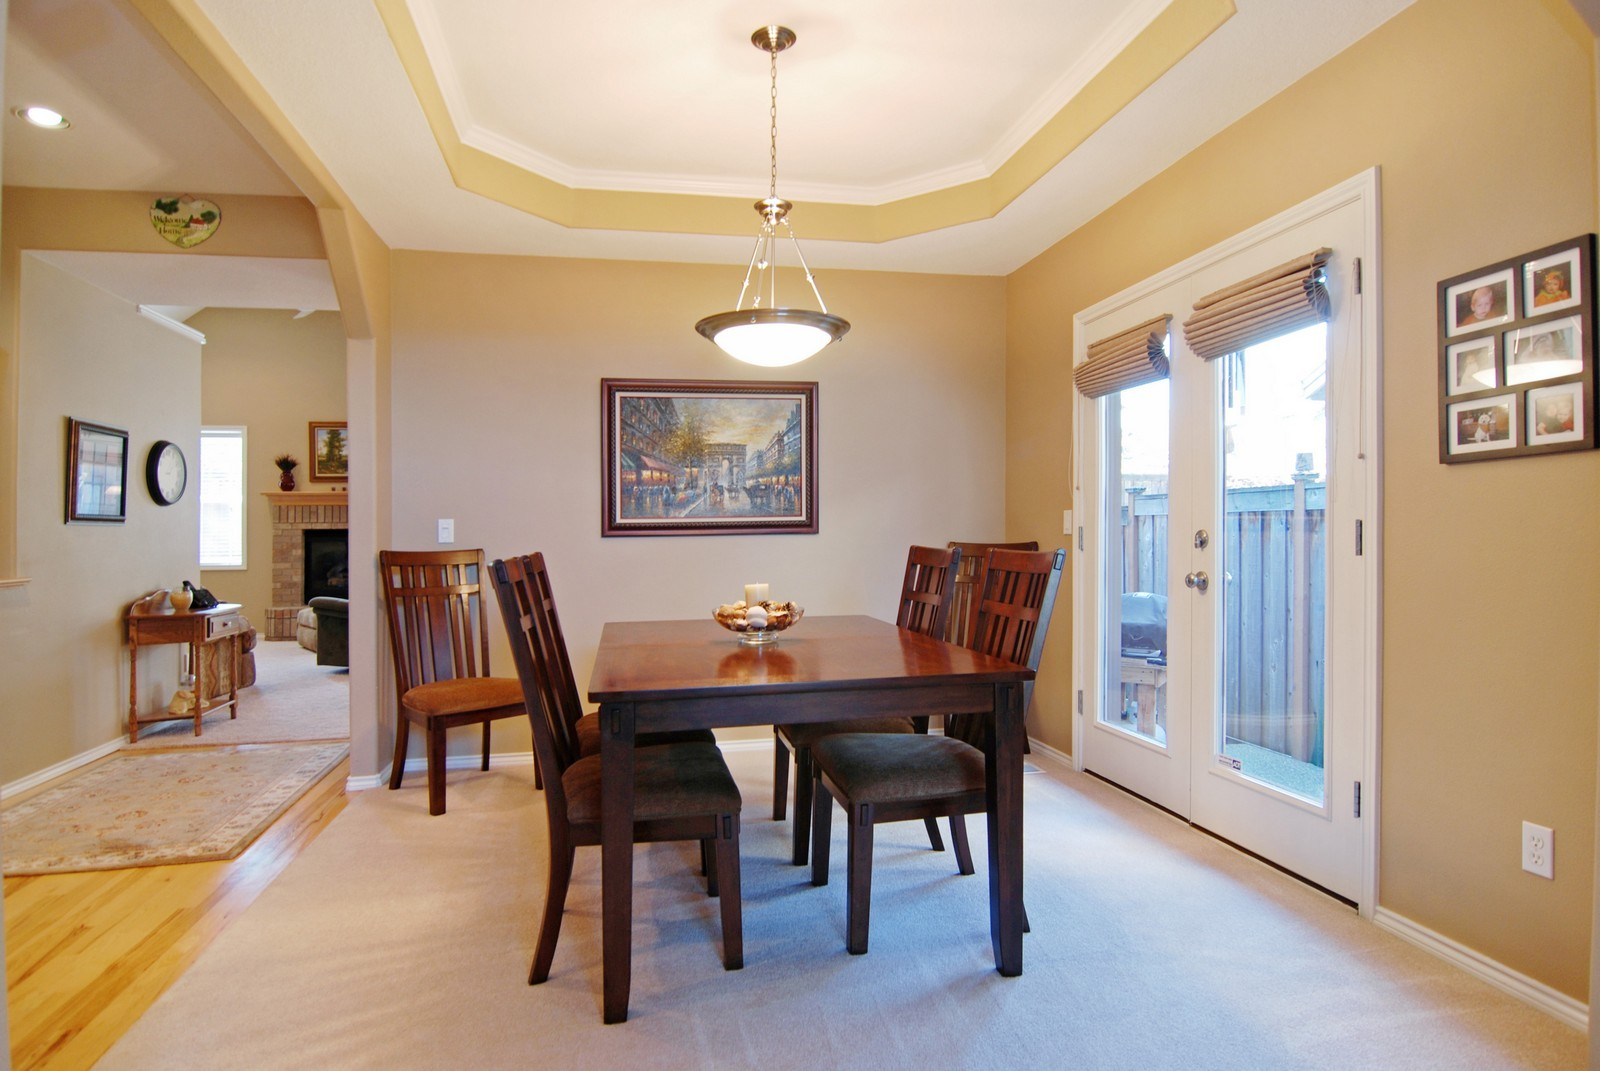 Real Estate Photography - 22553 SW 106th Ave, Tualatin, OR, 97062 - Dining Room